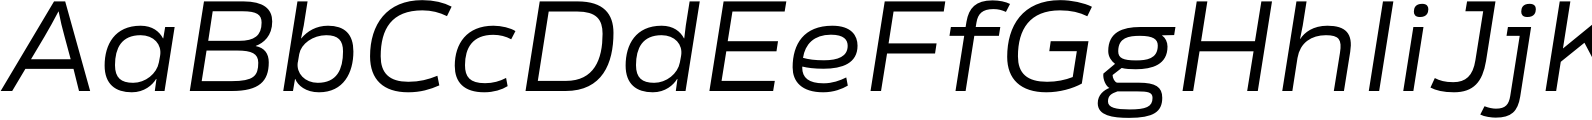 Rleud Extended Italic Font